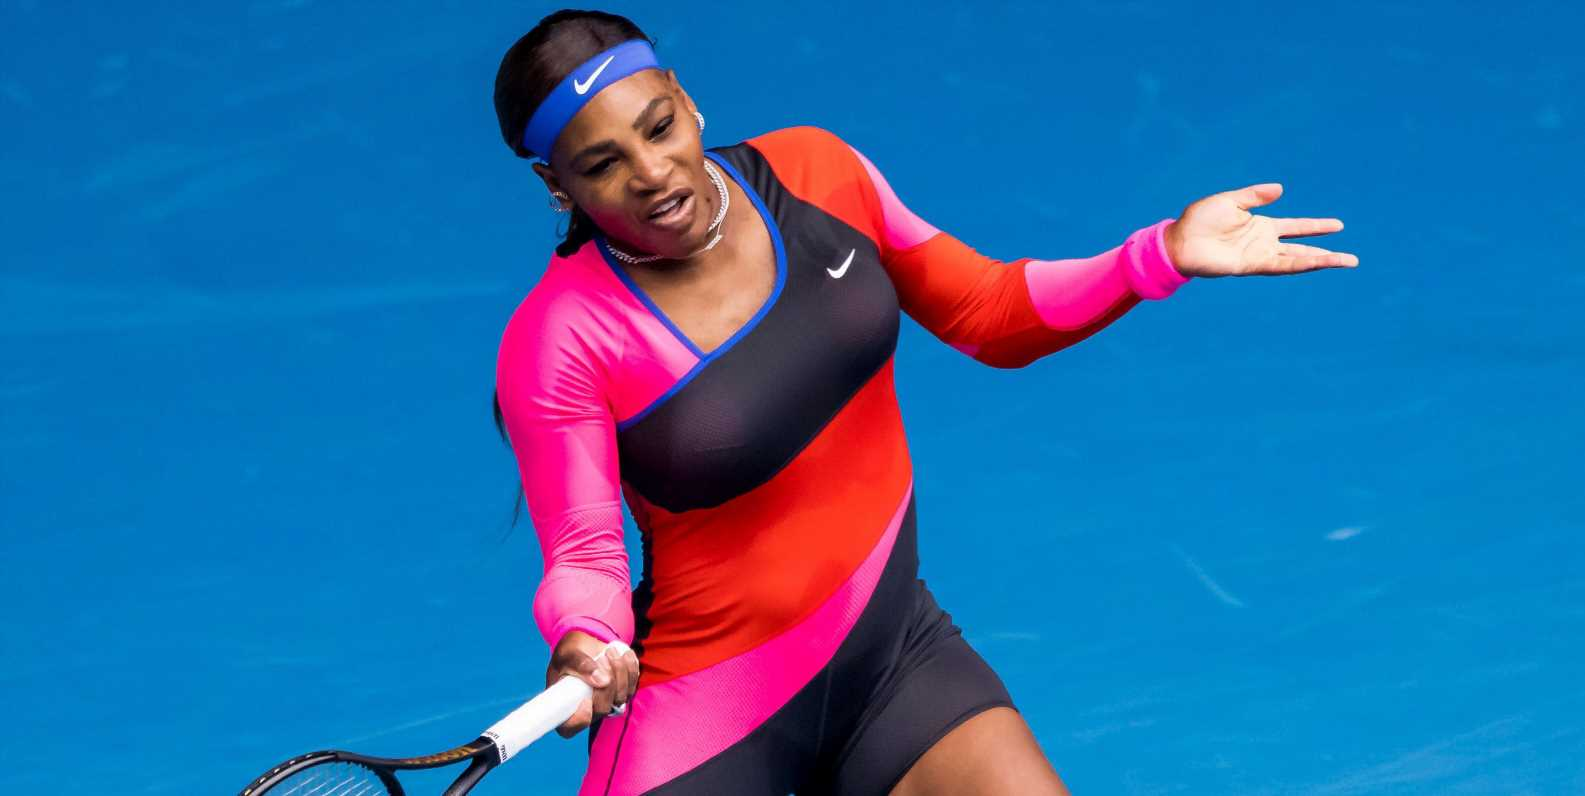 Serena Williams Honors Olympic Track Star Flo-Jo With One-Legged Catsuit At The Australian Open